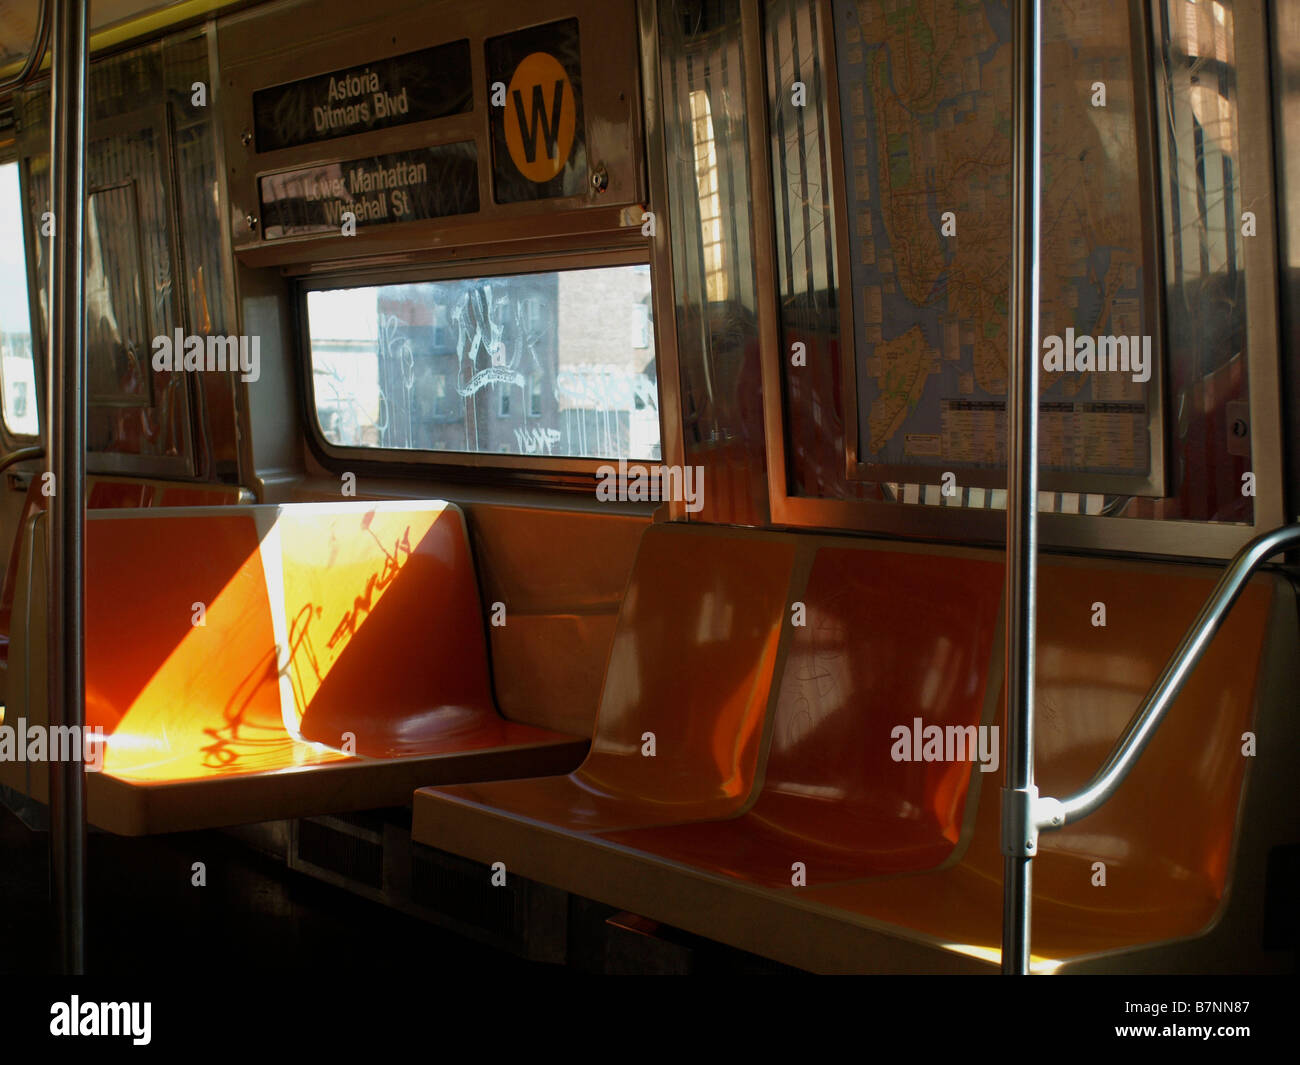 empty seats in a largely empty subway car on the w train line stock photo royalty free image. Black Bedroom Furniture Sets. Home Design Ideas